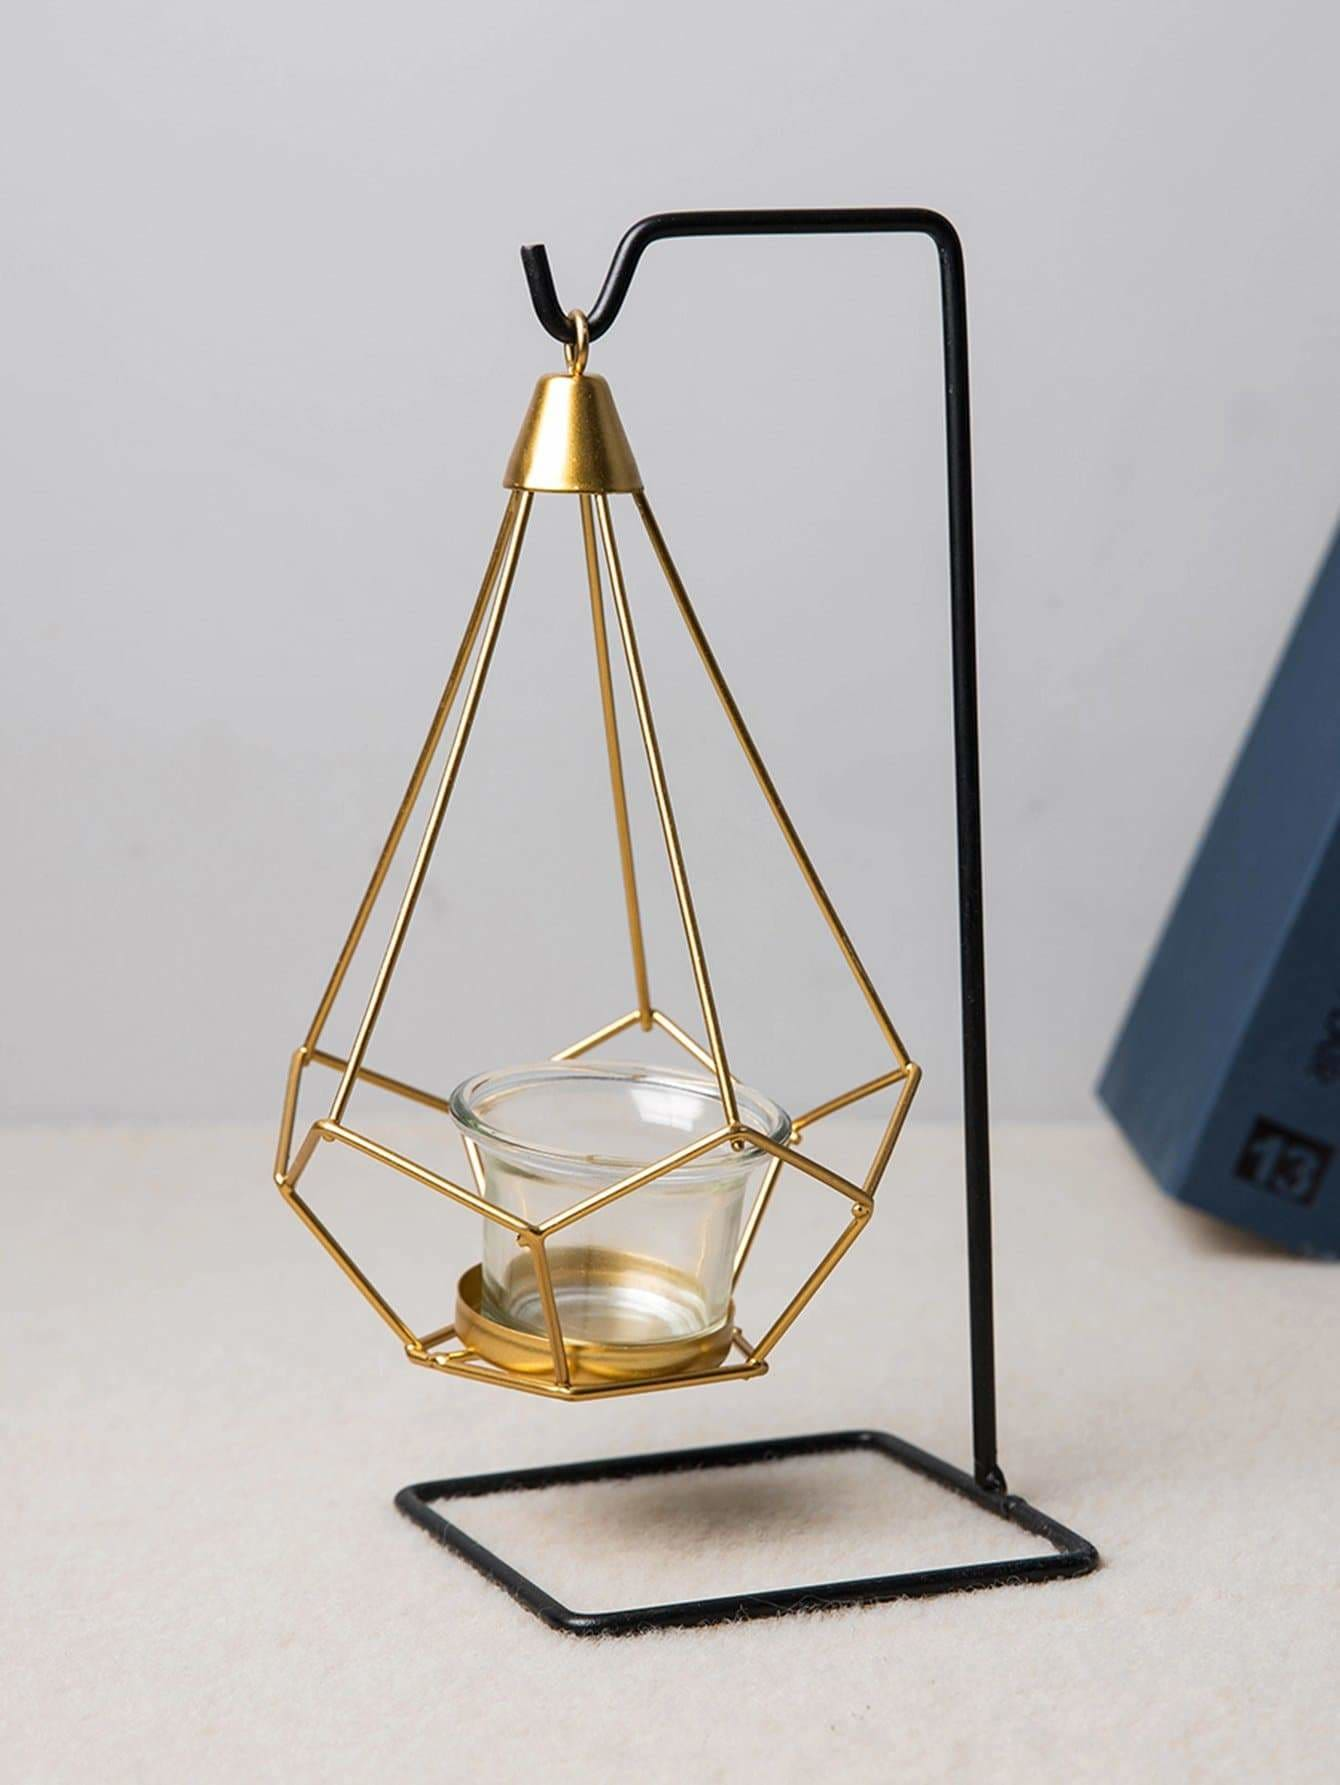 Hanging Geometric Candle Holder 1pc - Displays